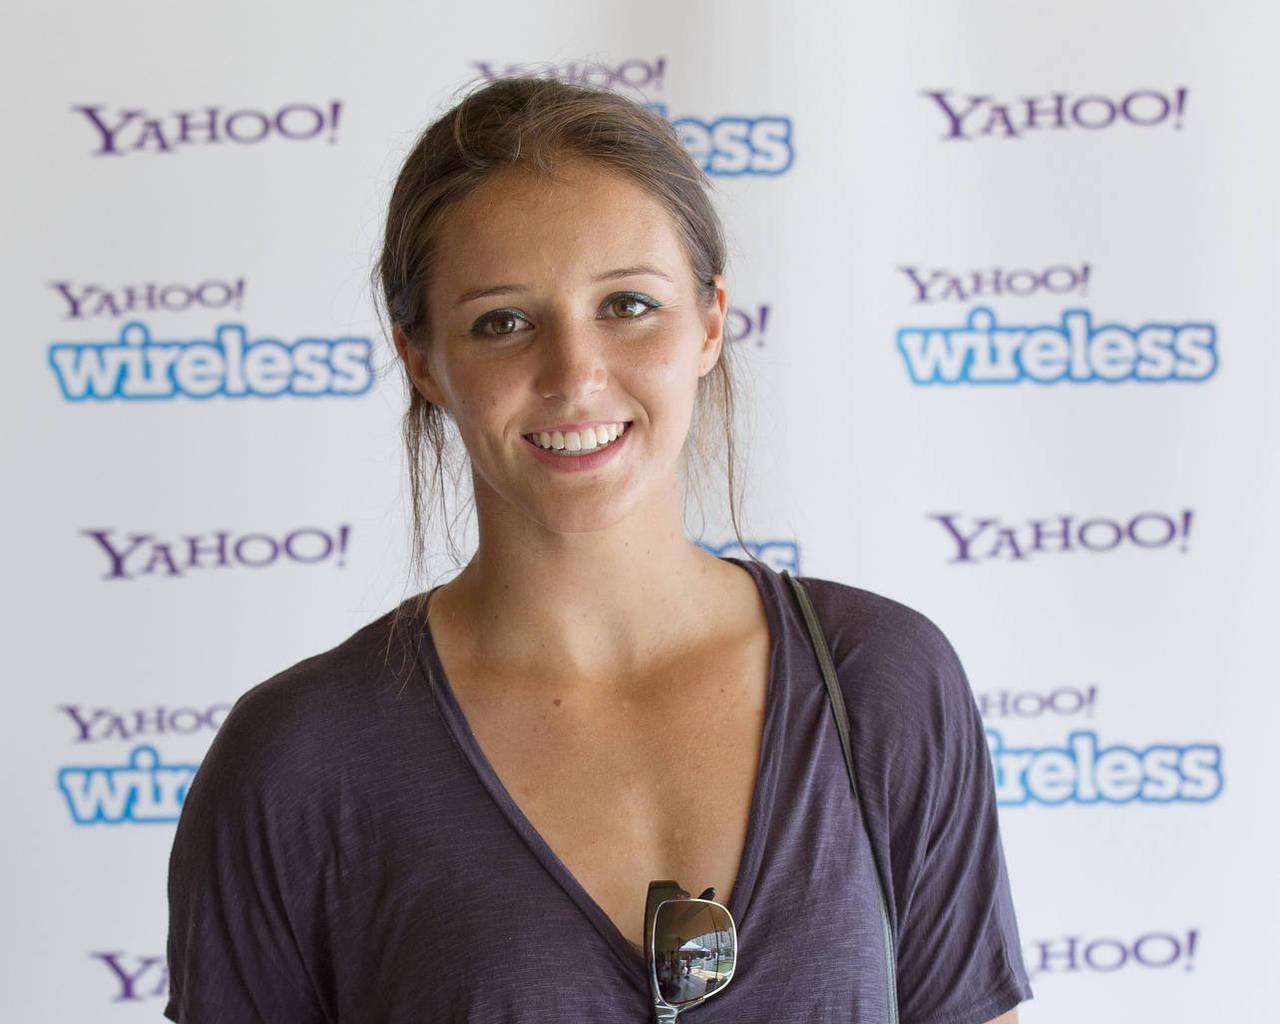 laura robson smile wallpaper pictures 53979